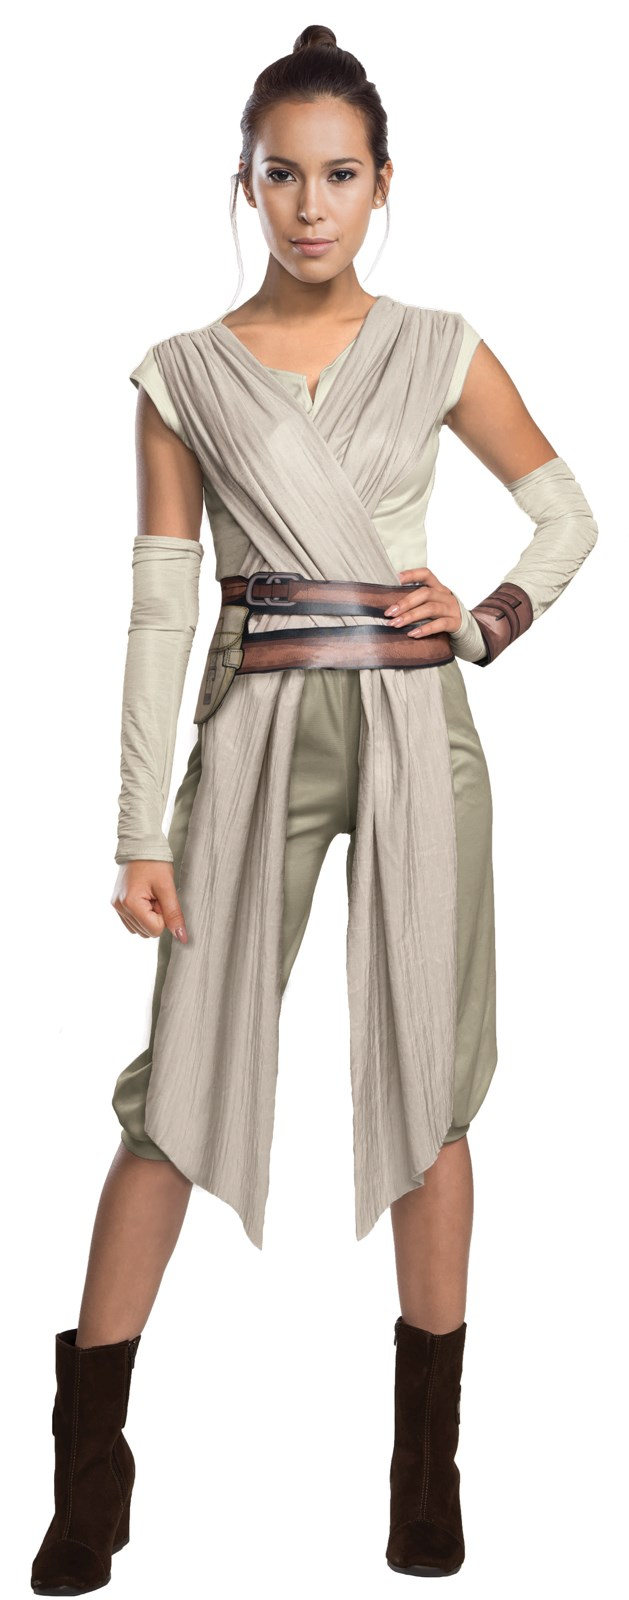 Star Wars Episode 7 - Womens Deluxe Rey Costume